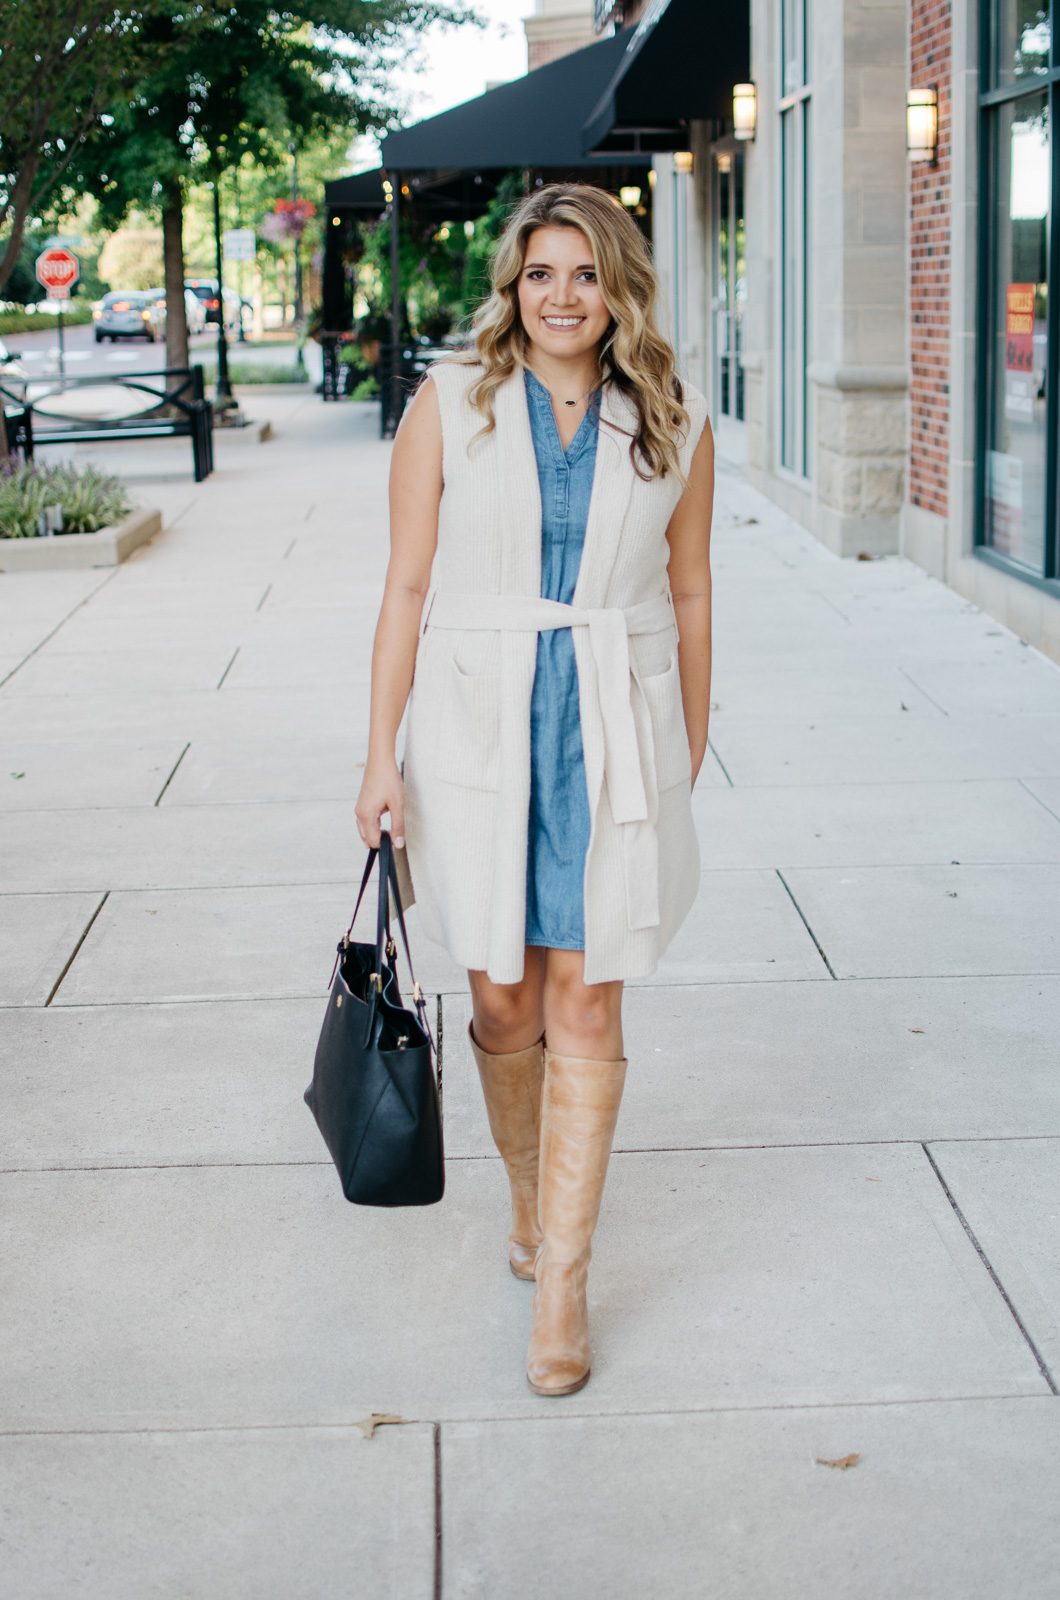 chambray dress with long sweater vest outfit | Want to know how to wear a sleeveless sweater? I'm sharing two outfit ideas in today's post! bylaurenm.com